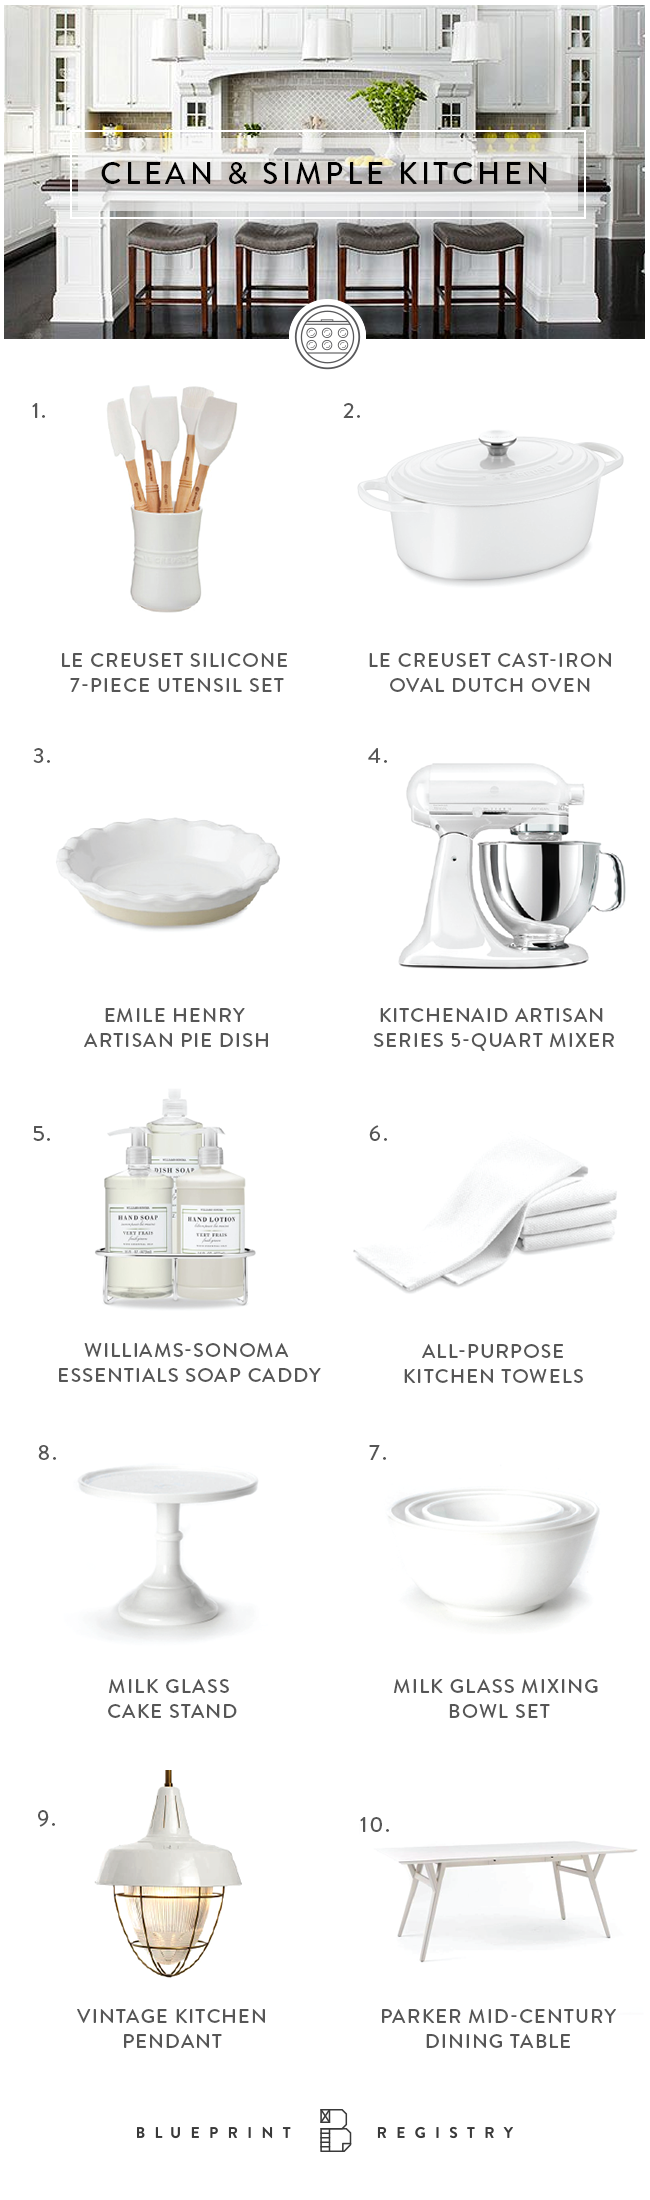 Register for refreshing finds for a bright + breezy kitchen update ...